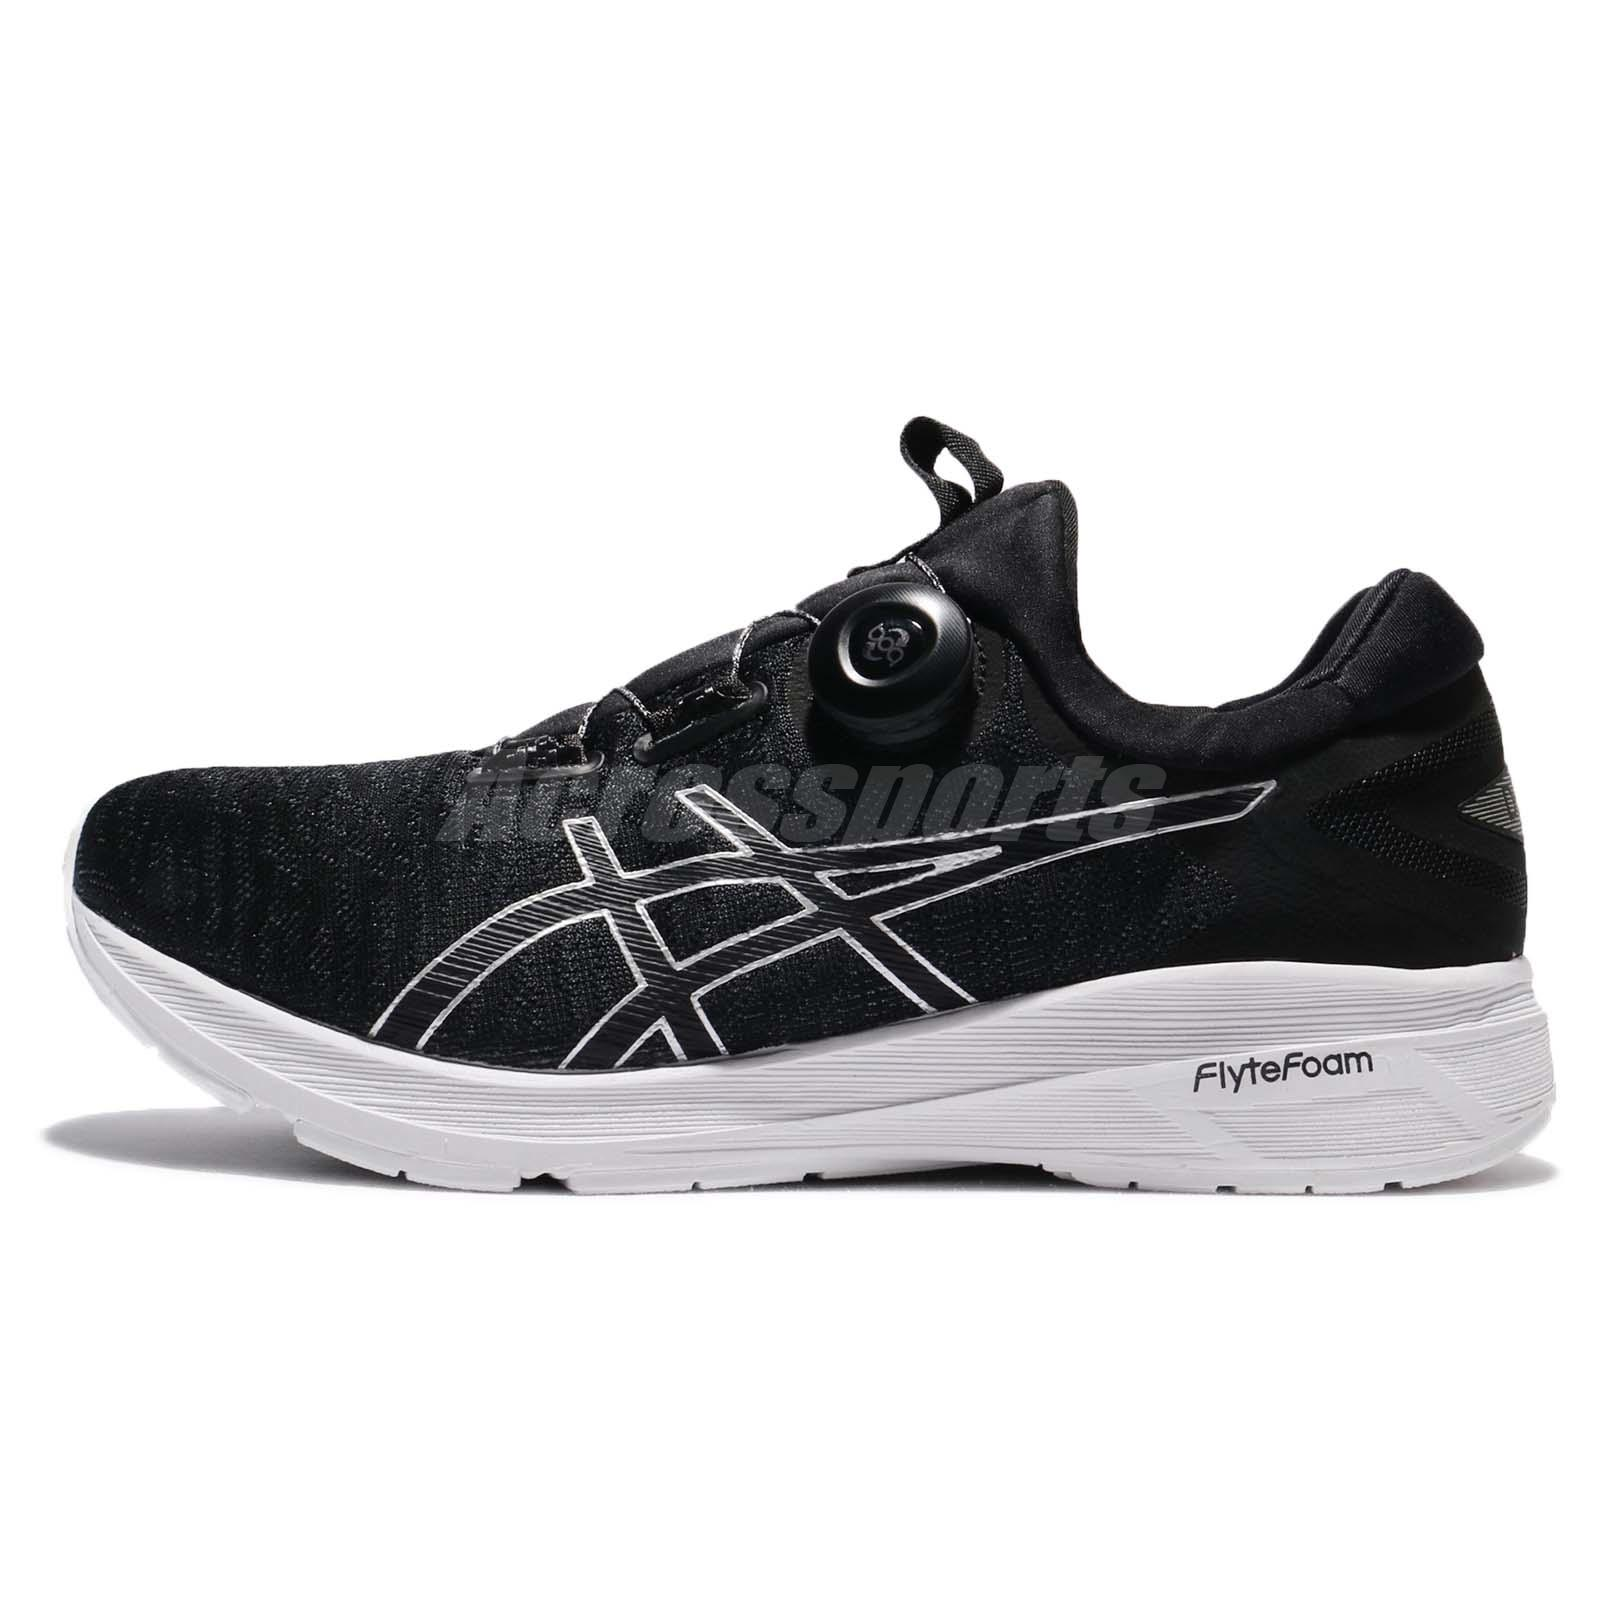 abfde4ce2a9827 Asics Dynamis Flytefoam Boa Carbon Black Men Running Shoes Sneakers  T7D1N-9790